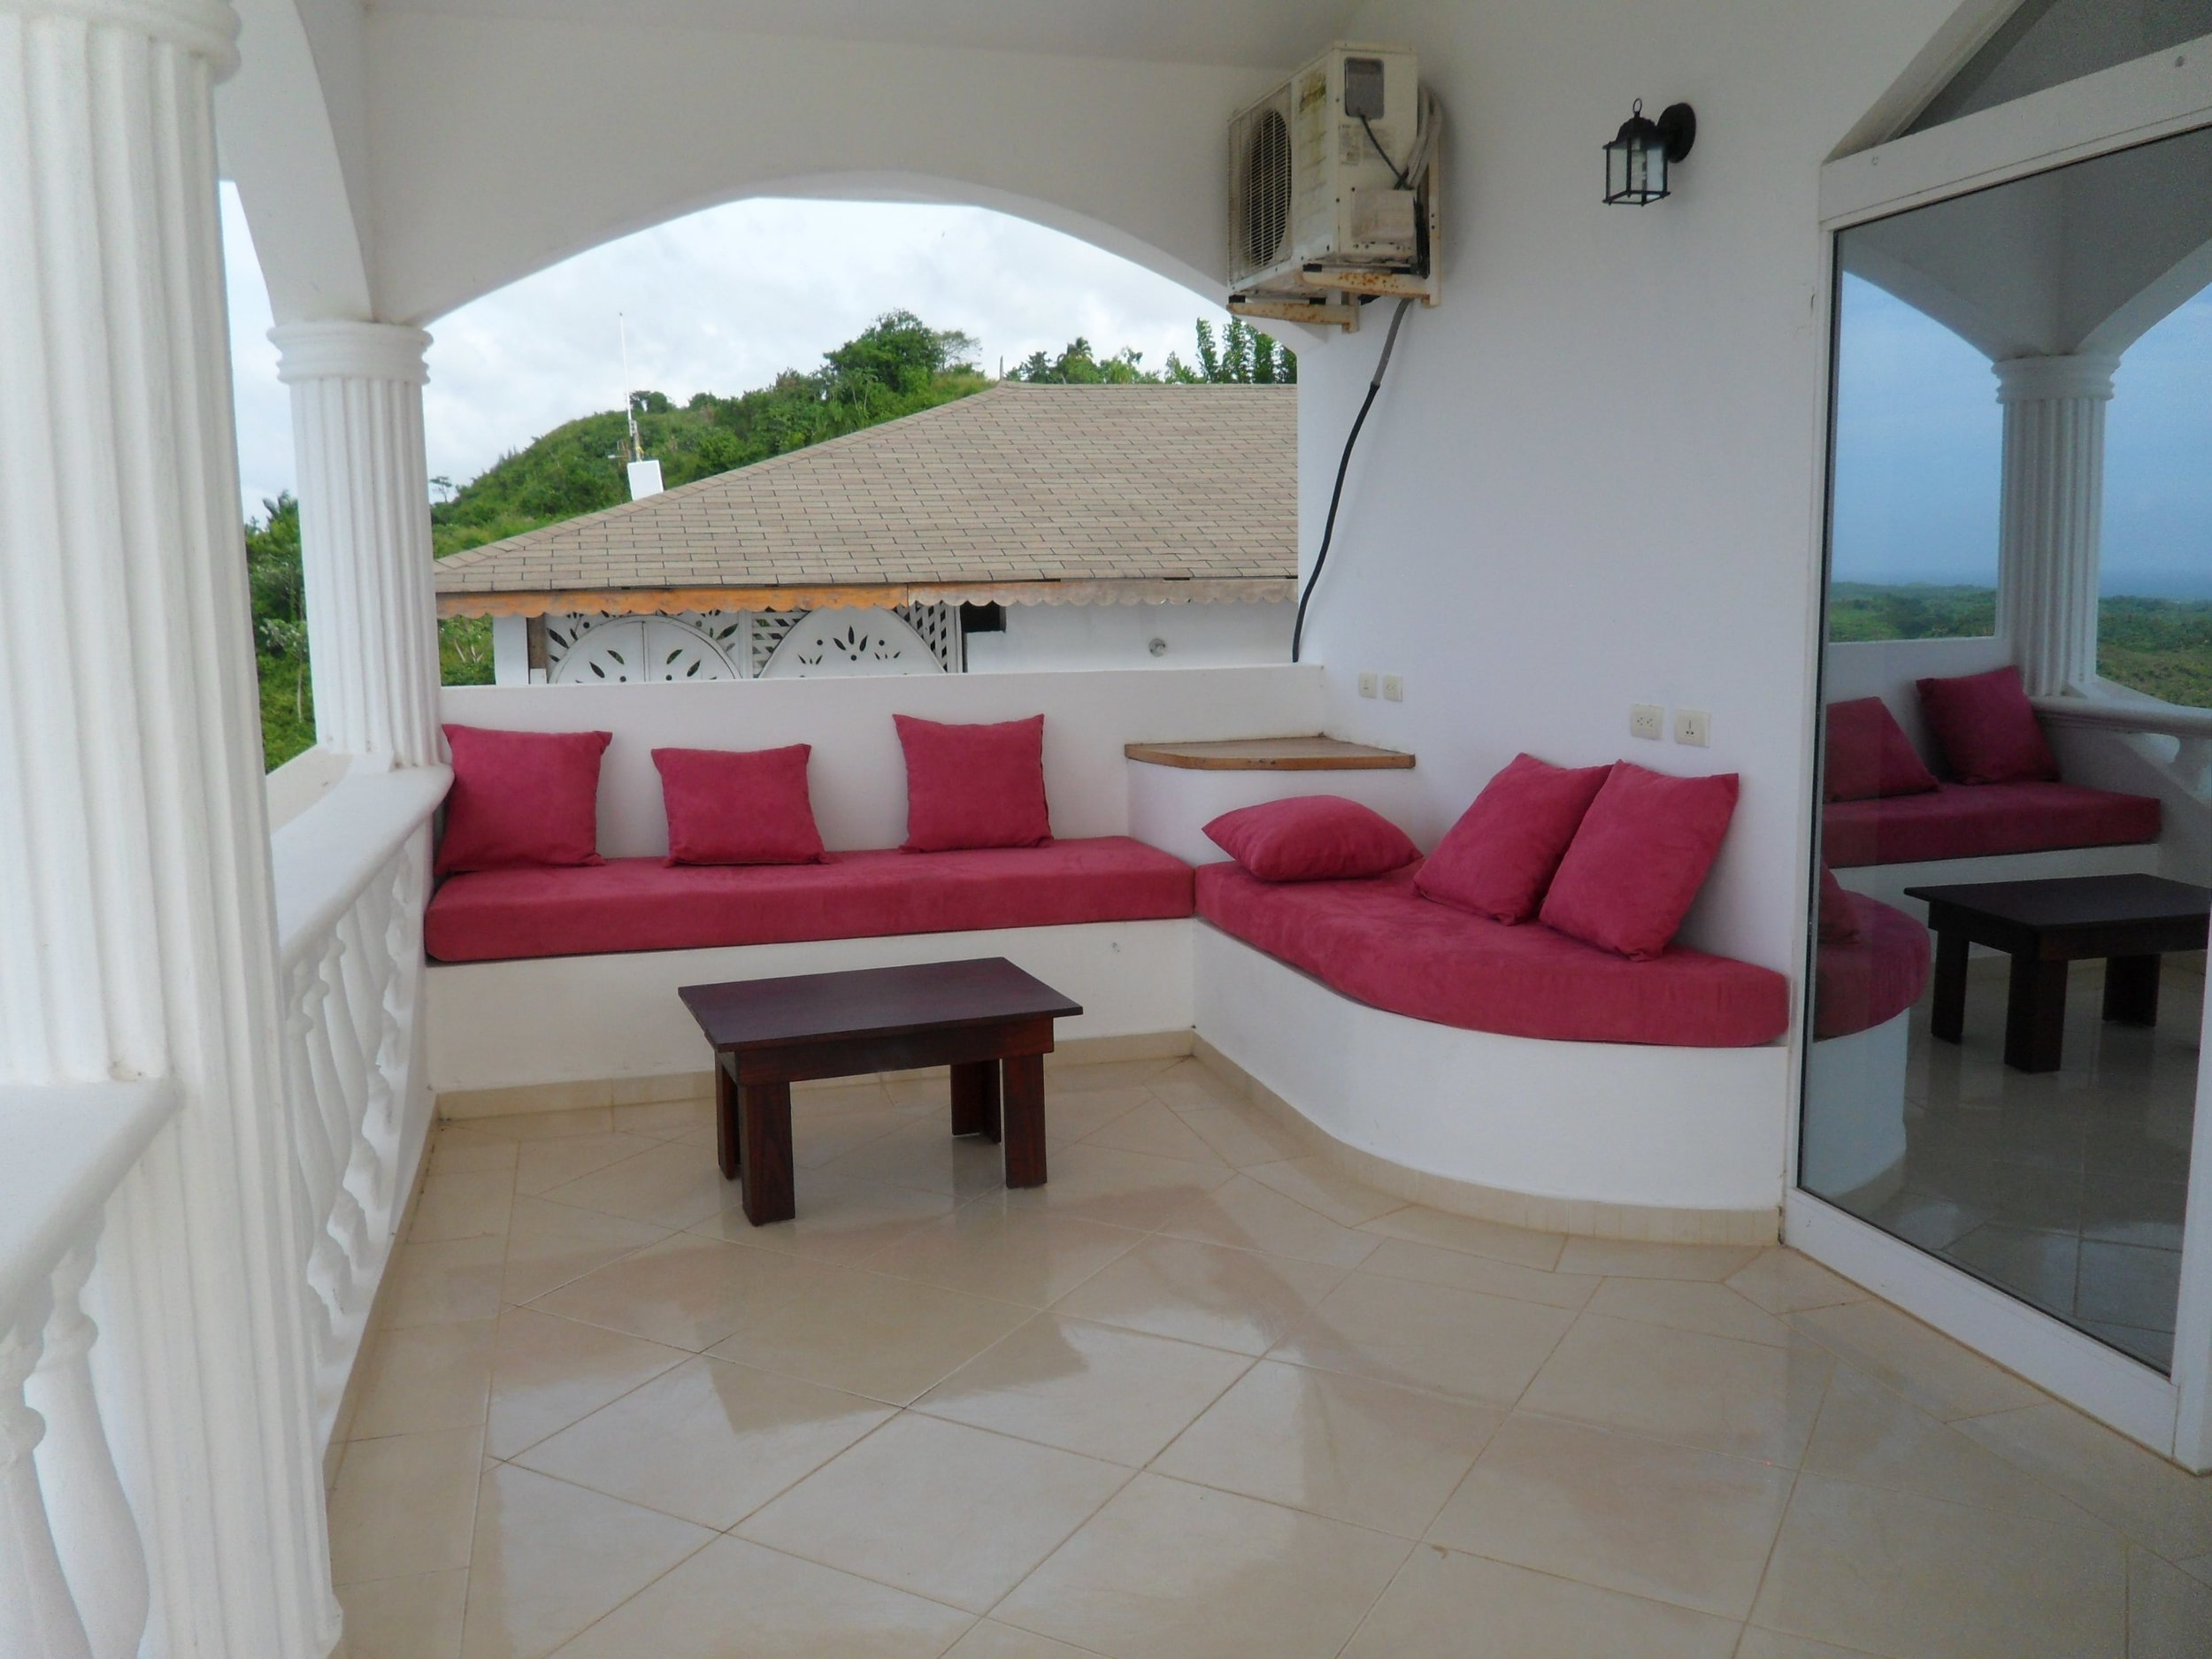 Villa and Bungalow with panoramic view for sale Las Terrenas38-min.JPG